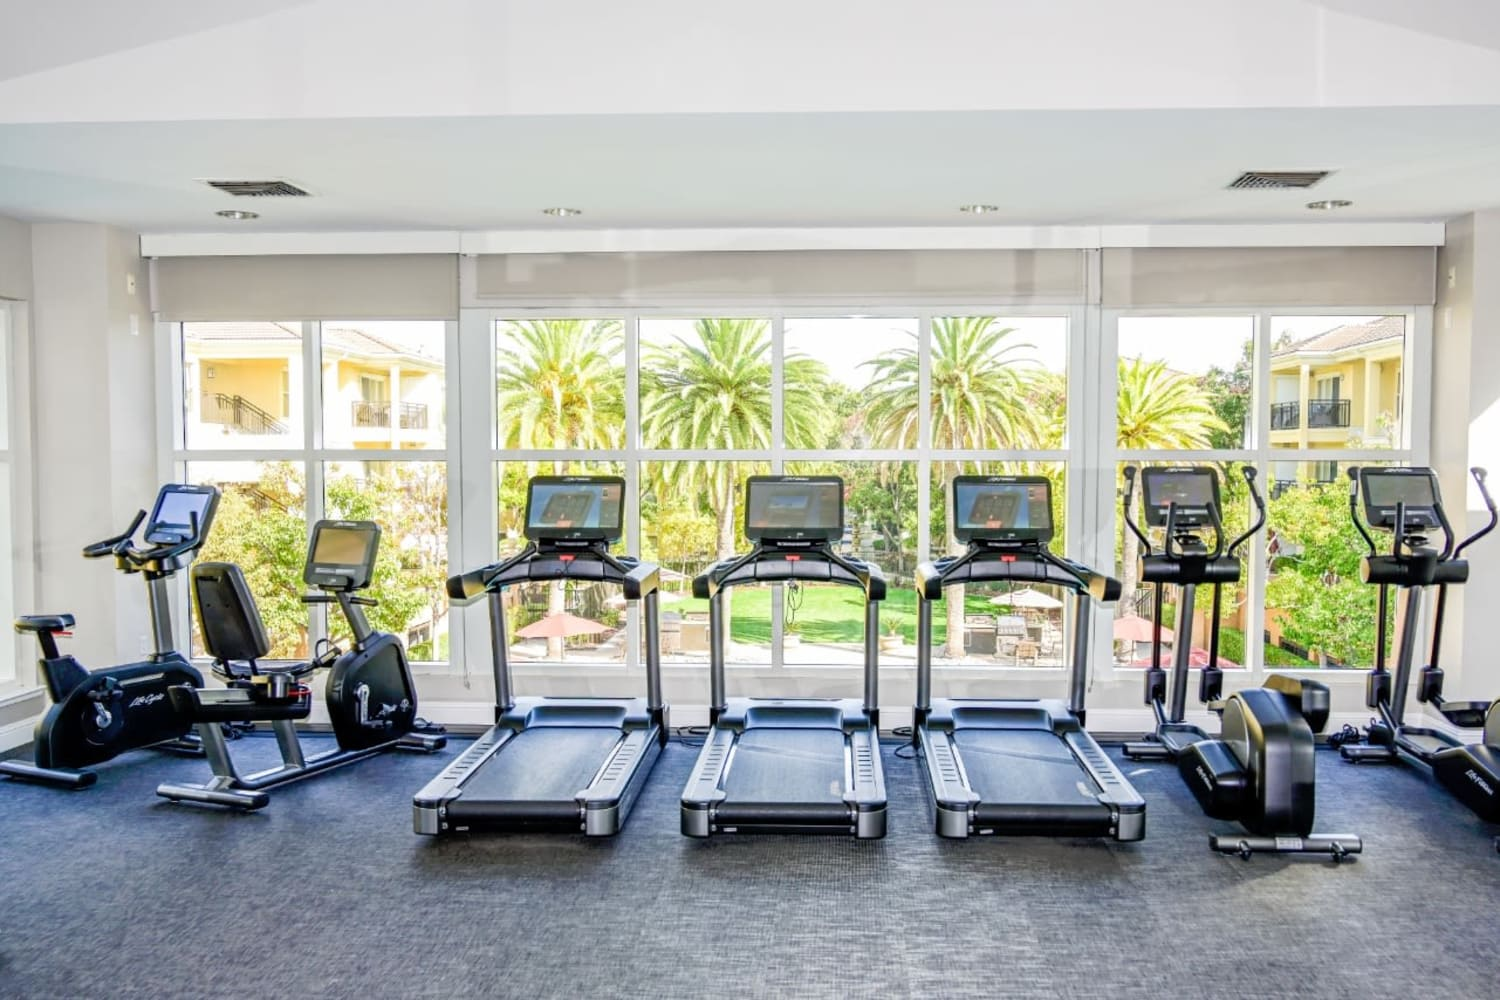 Fitness center at The Carlyle in Santa Clara, California